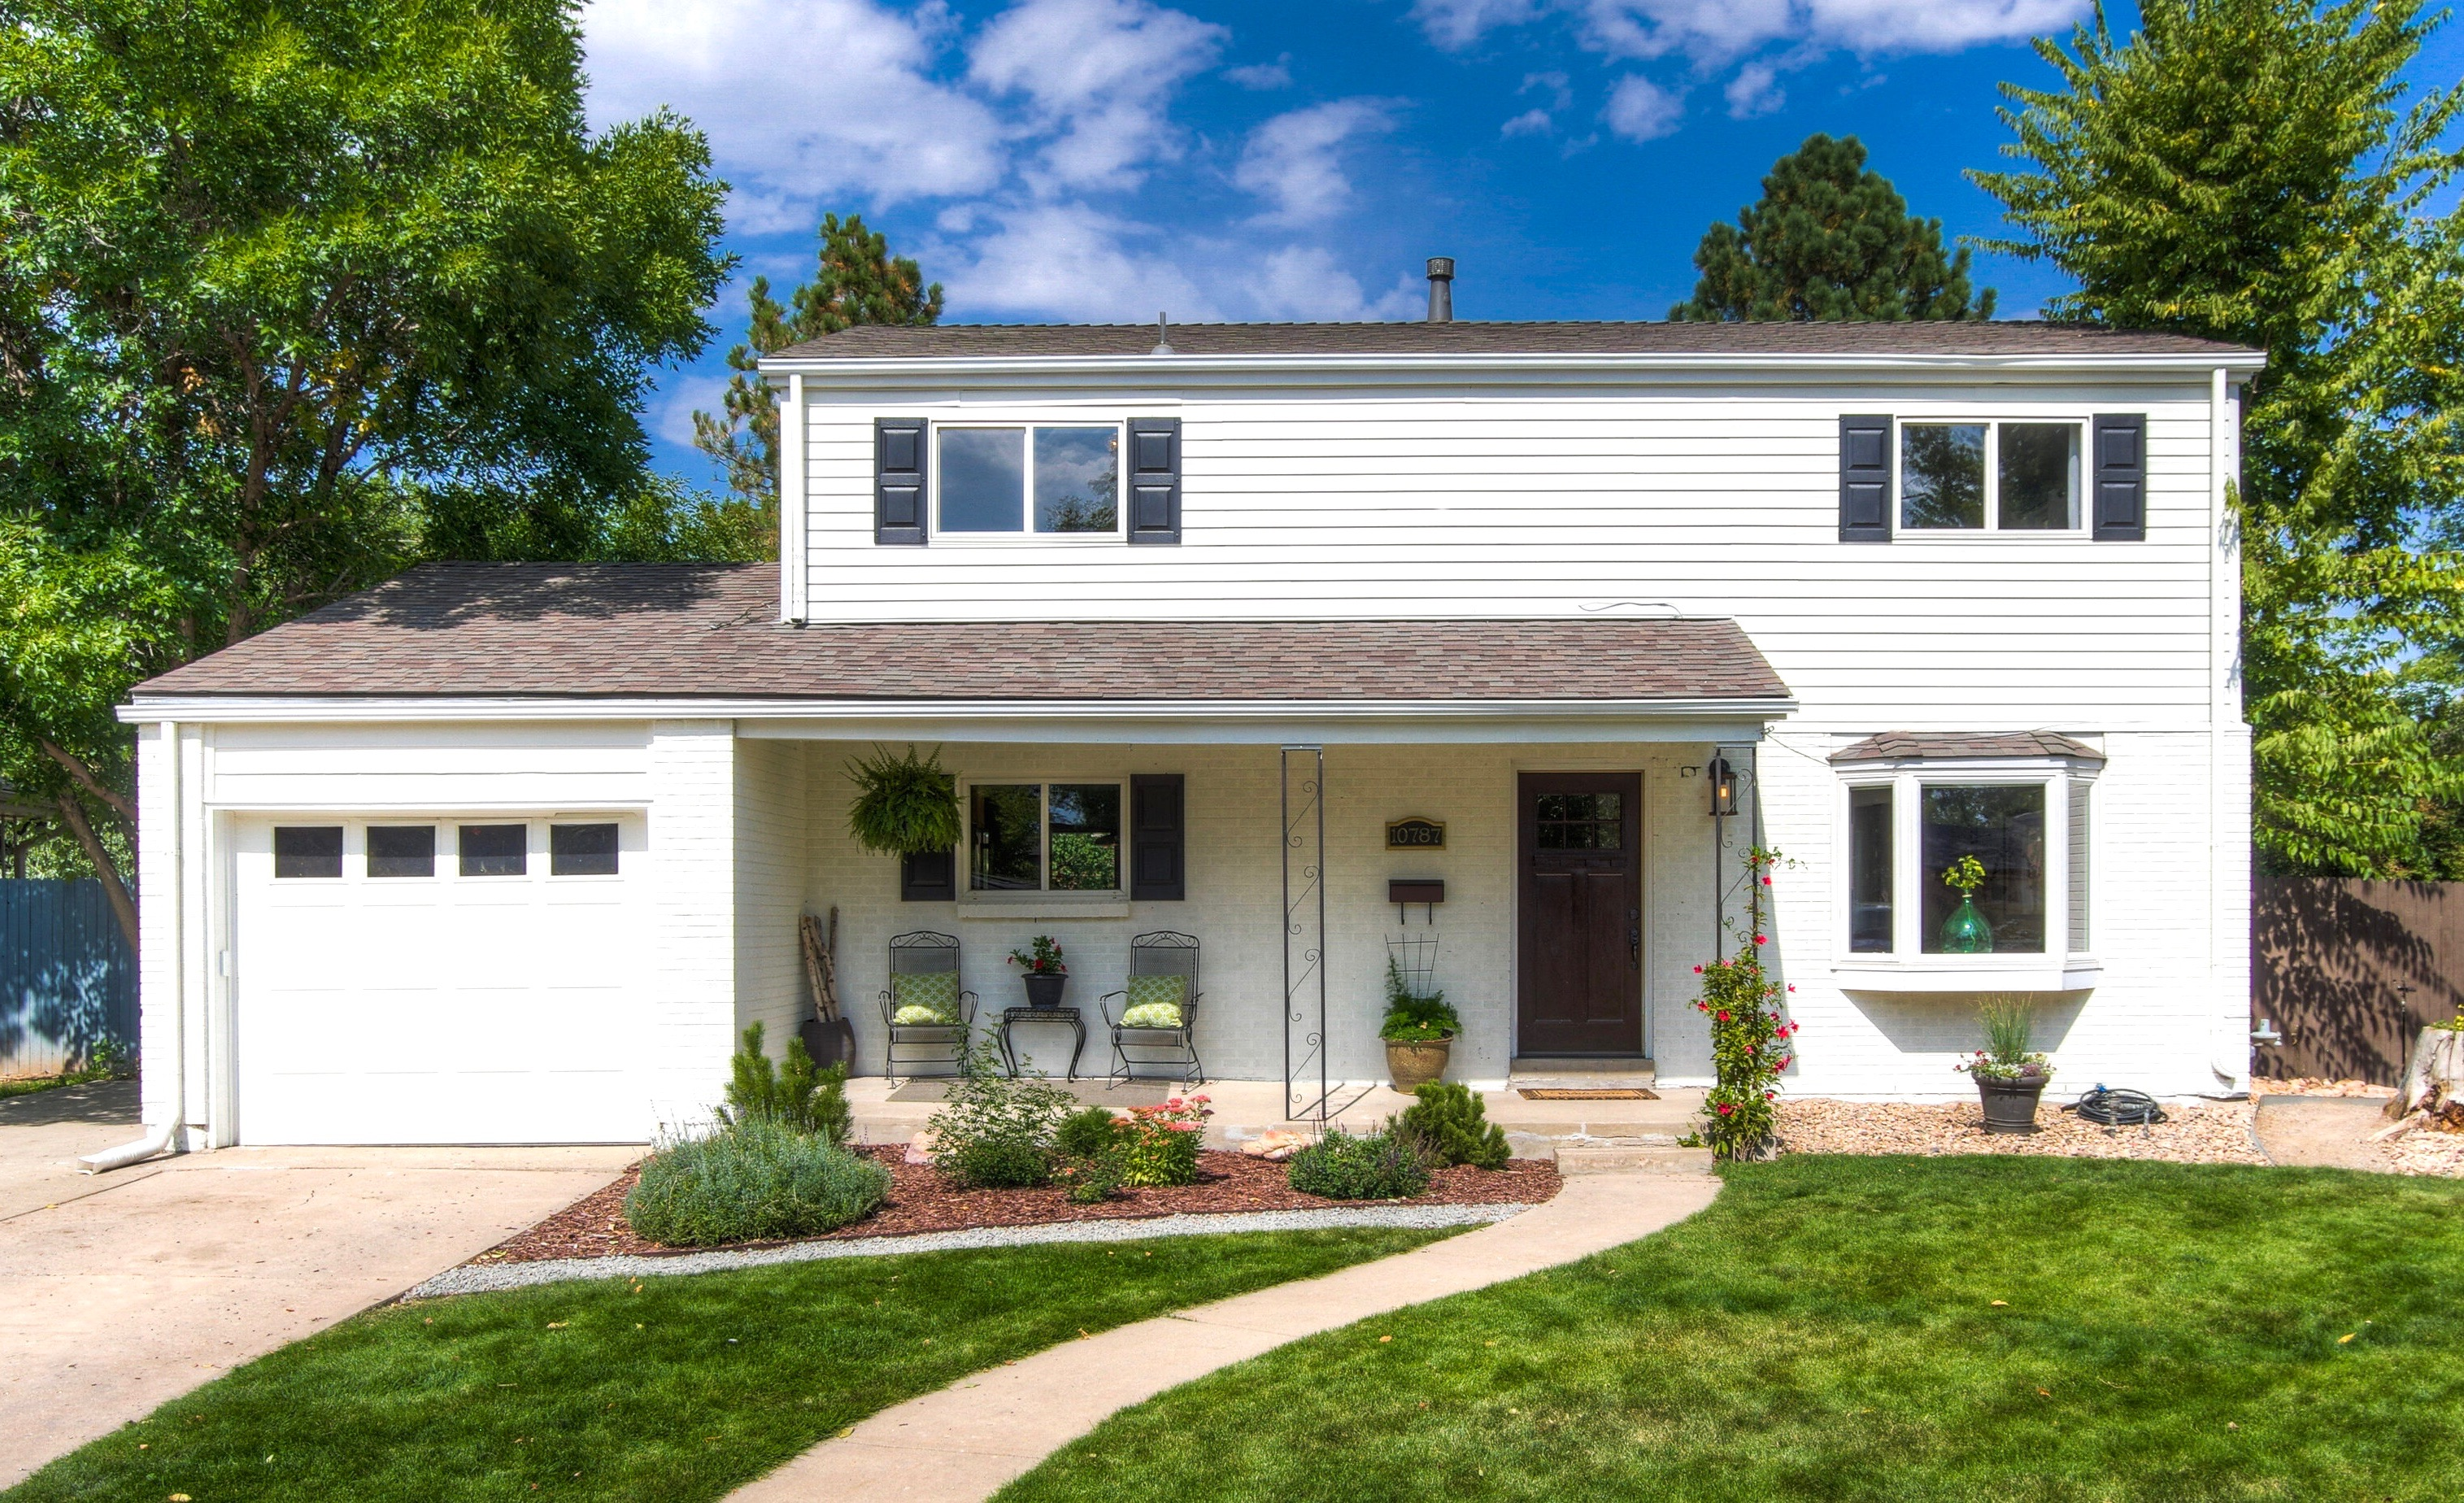 SOLD – 10787 W 61st Ave, Arvada, CO 80004